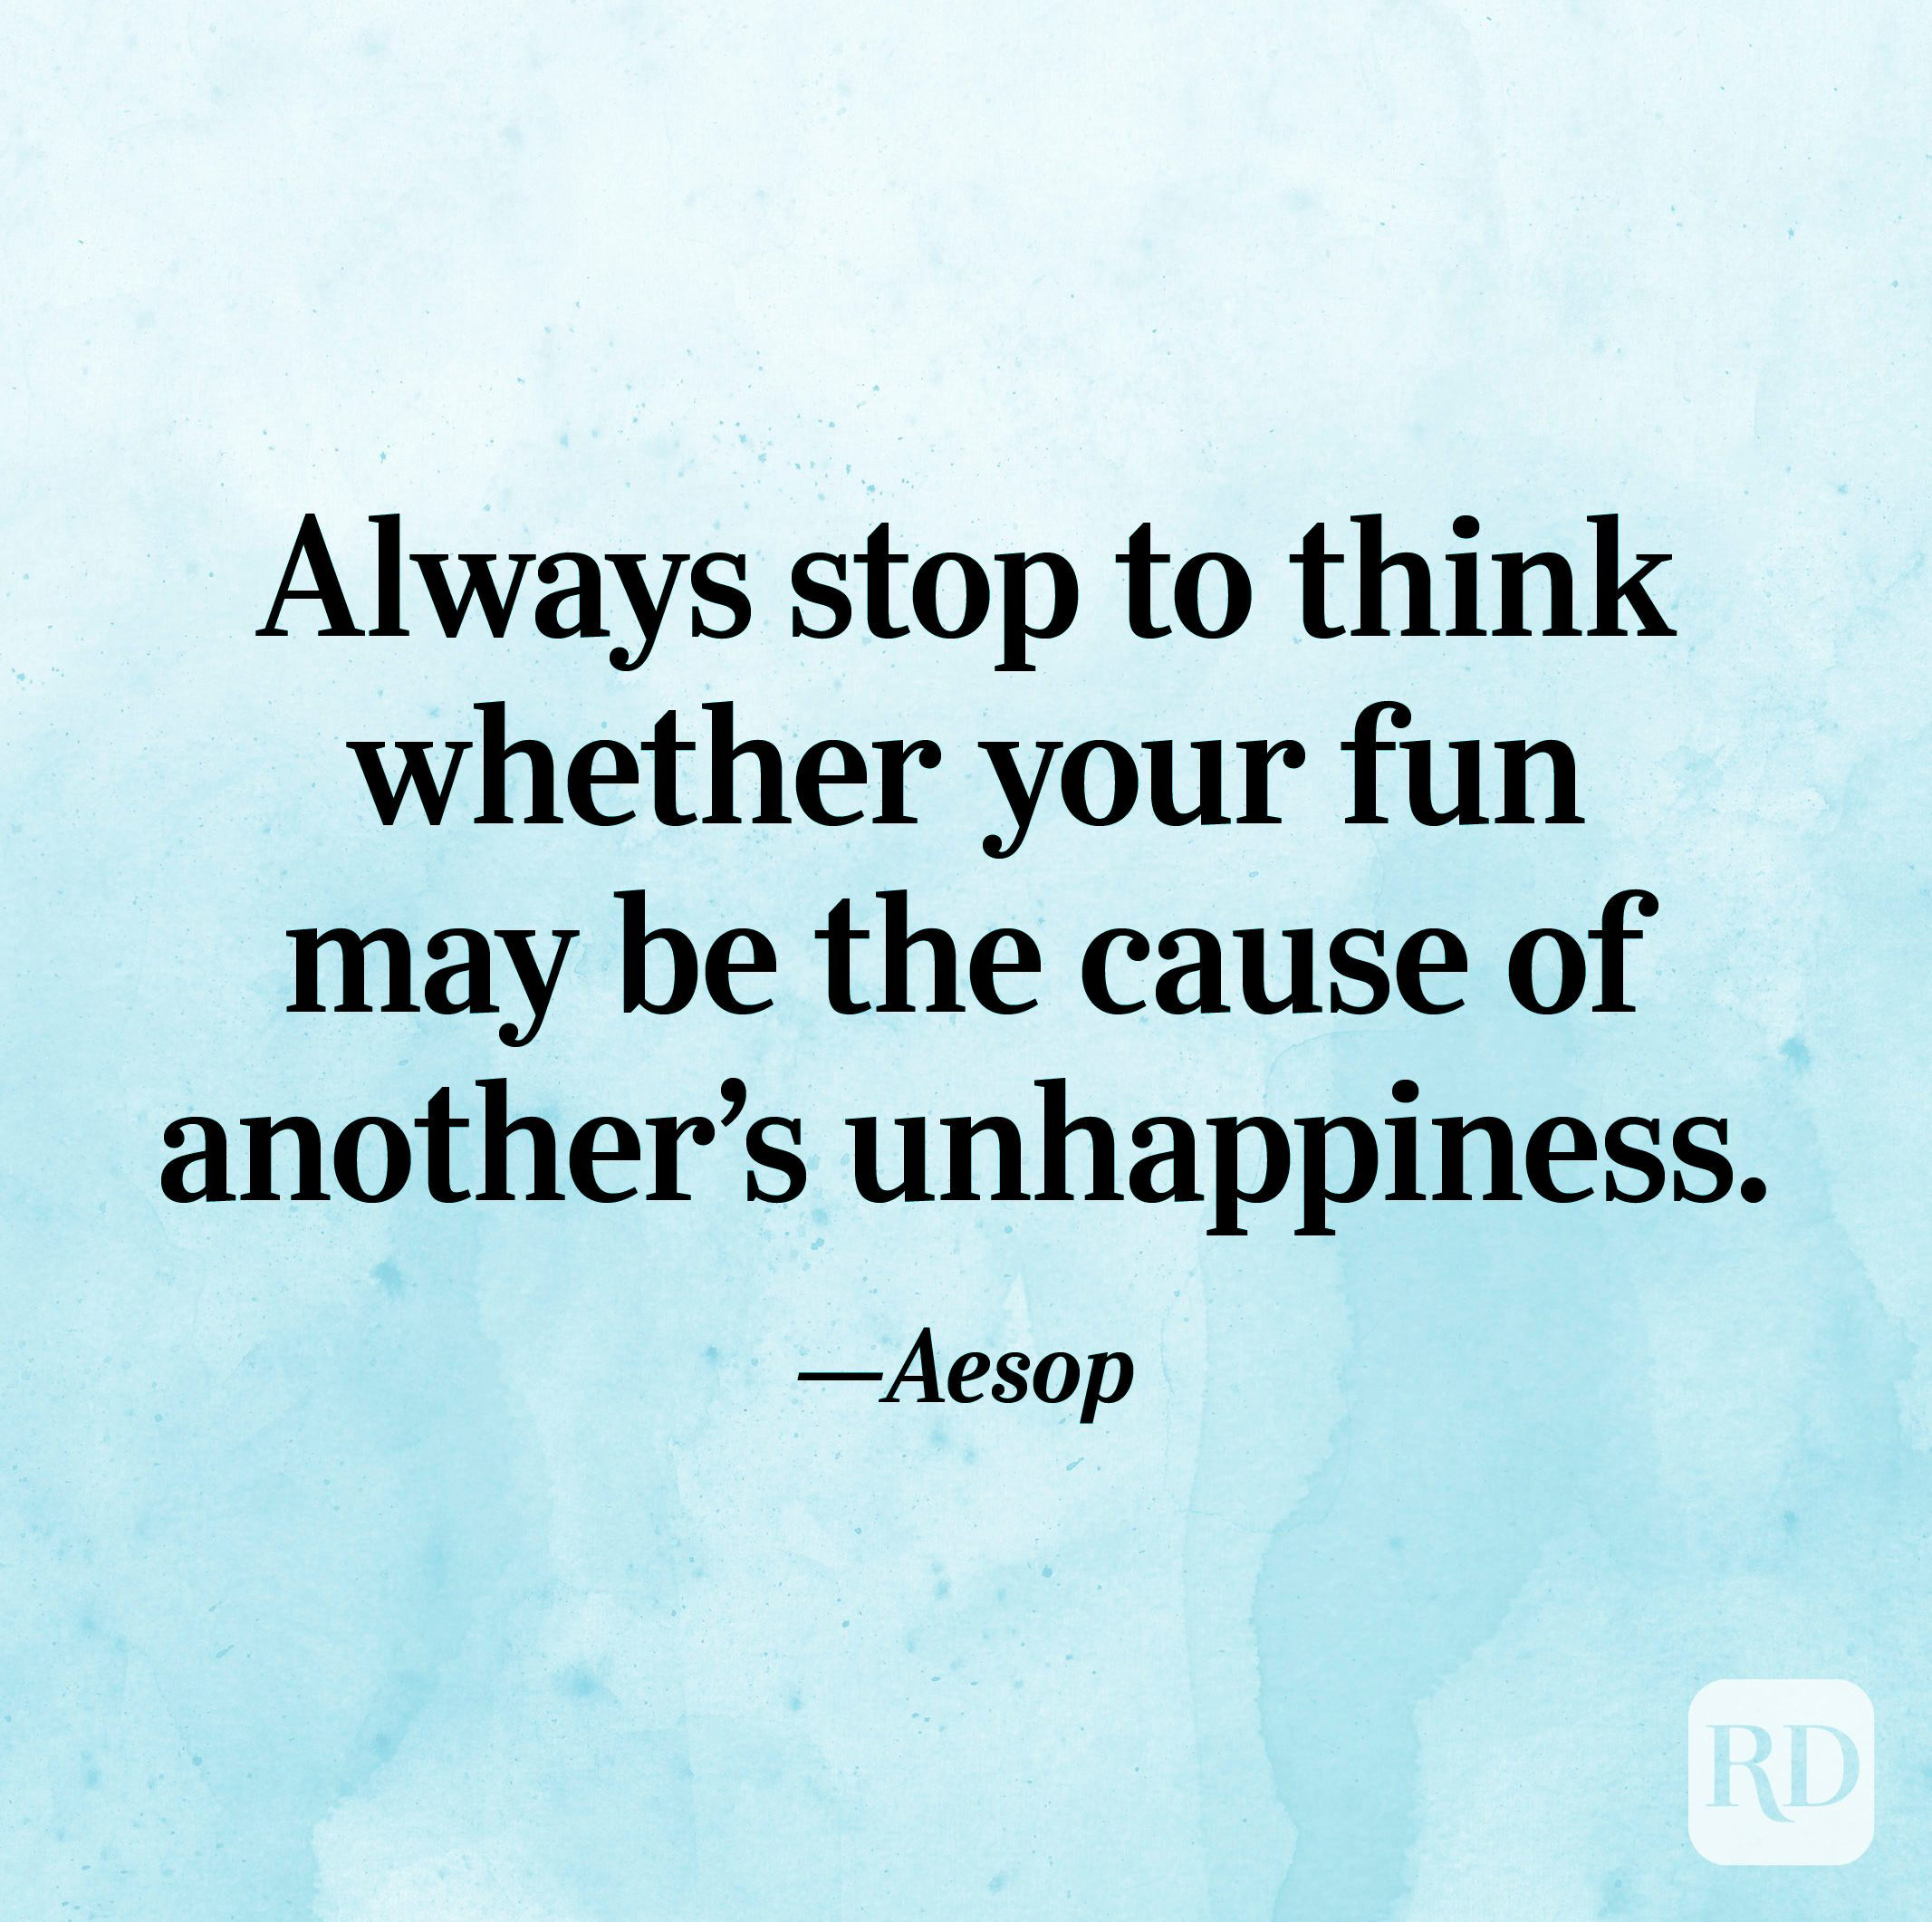 """""""Always stop to think whether your fun may be the cause of another's unhappiness."""" —Aesop"""